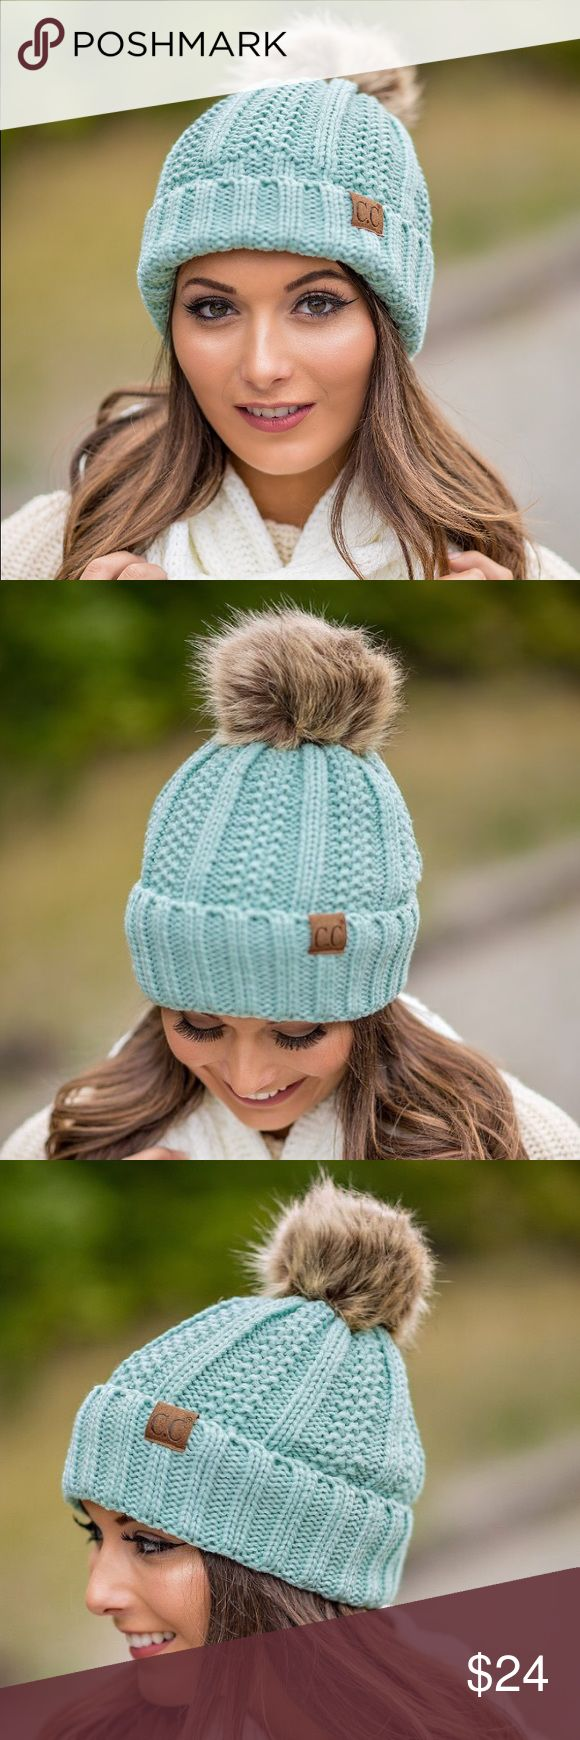 Mint Pom Knitted Beanie This stunning mint knit beanie is perfect for any chilly day. With a soft knit, blanket lined inside, stylish faux fur pom pom and signature suede CC label you'll be stylish and warm all season long   Color: Mint  75% ACRYLIC 25% POLYESTER  Blanket Lined  Faux Fur Pom Pom C&C California Accessories Hats